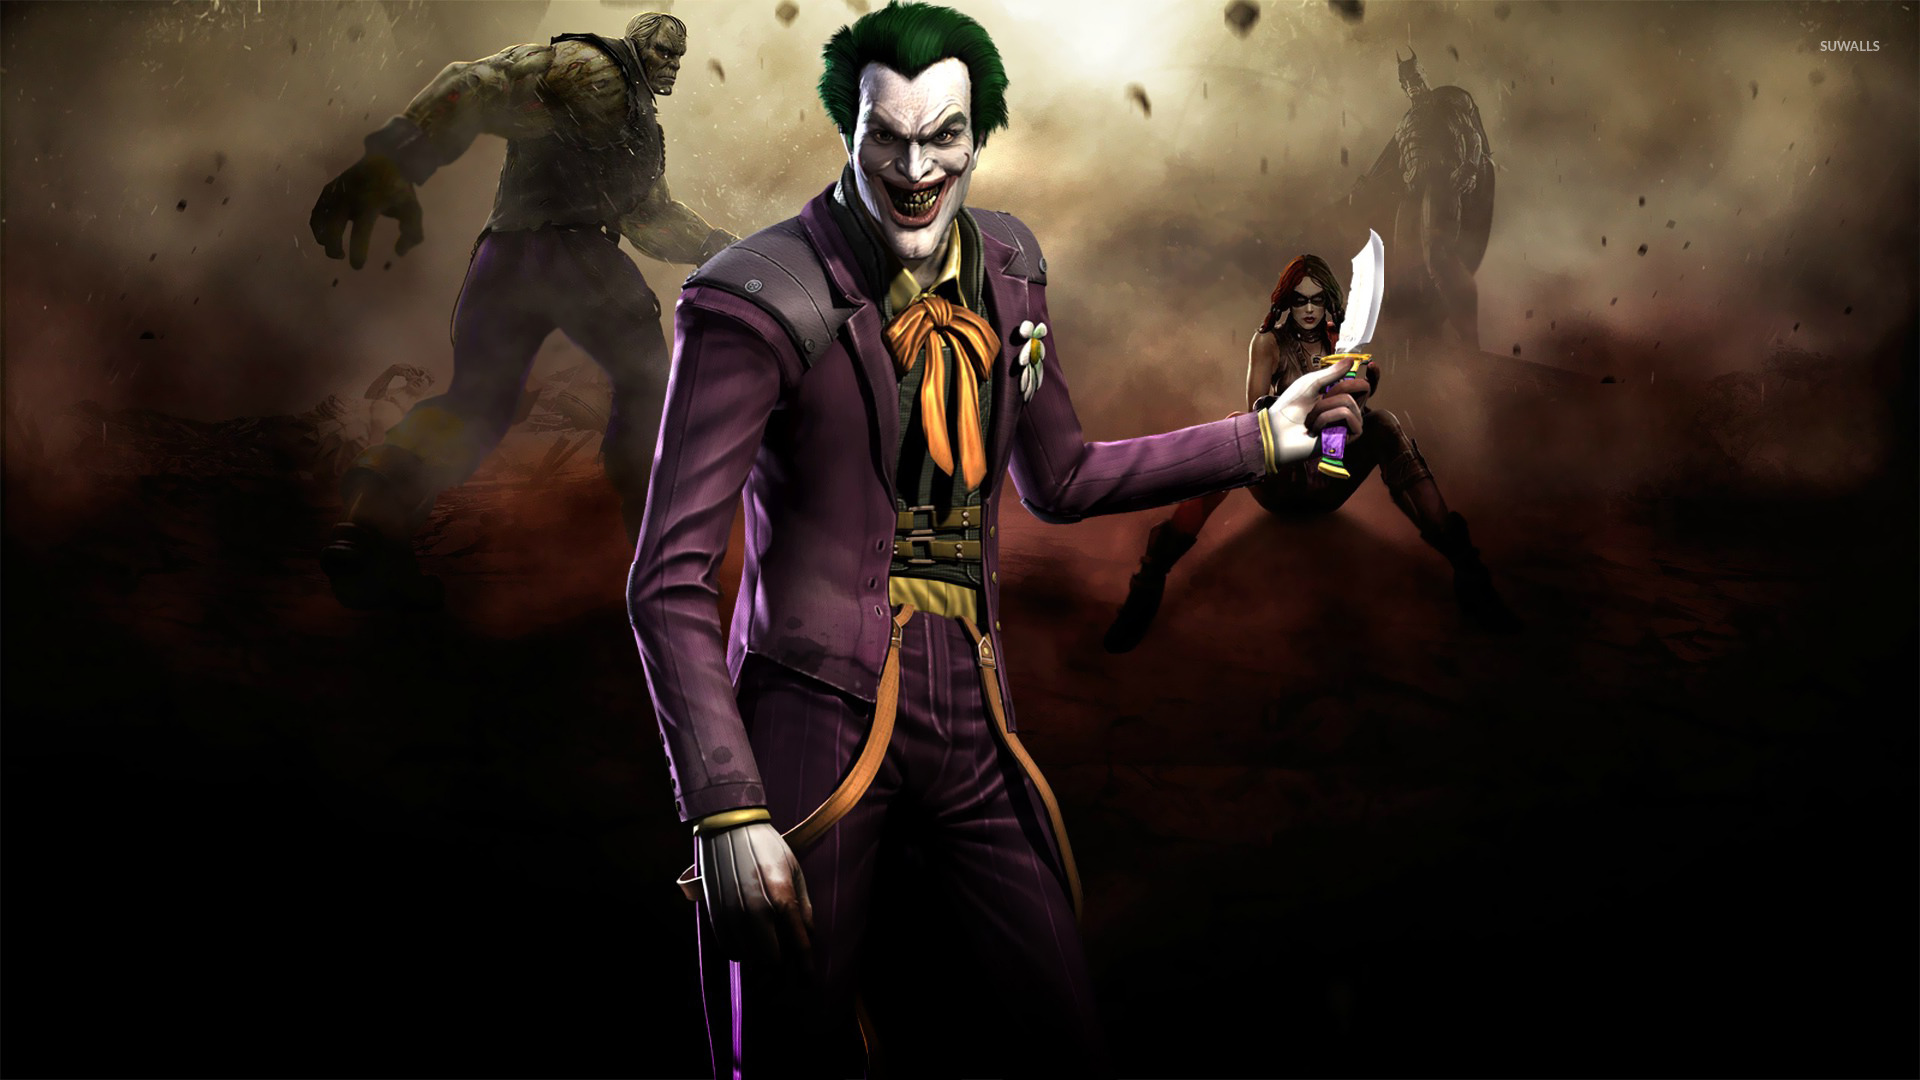 The joker injustice gods among us wallpaper game wallpapers the joker injustice gods among us wallpaper voltagebd Image collections